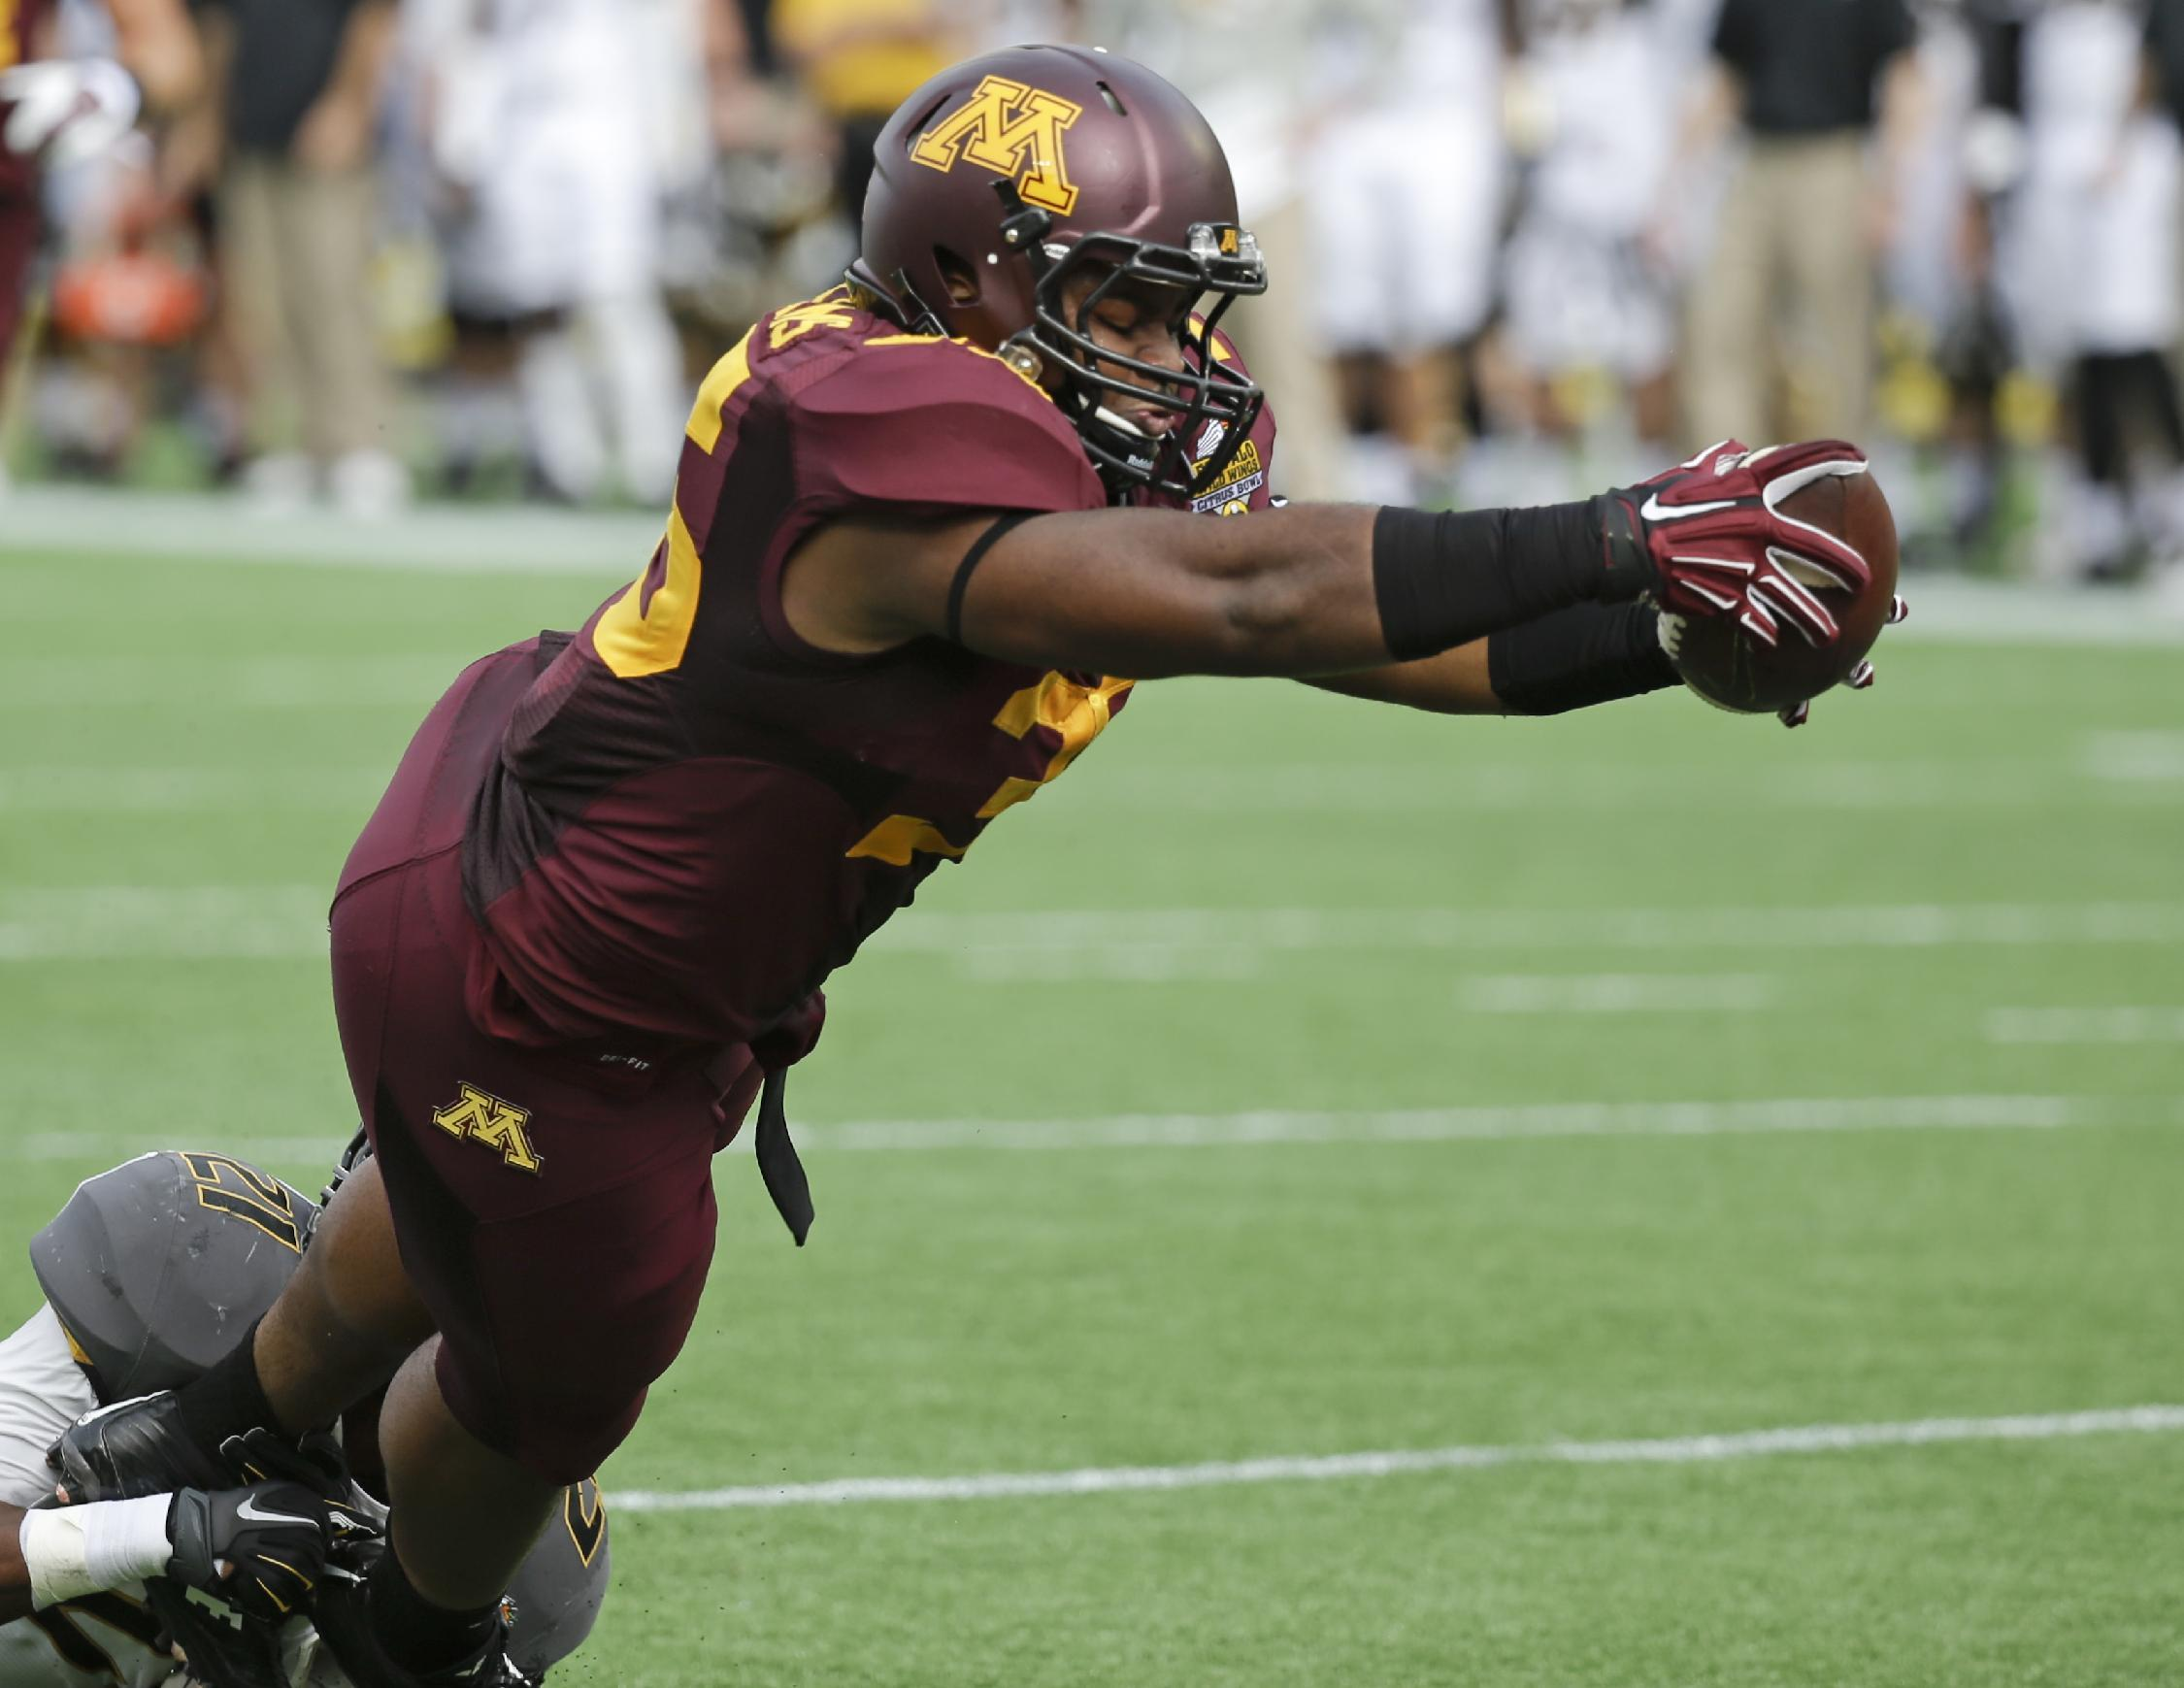 Minnesota RB Rodrick Williams Jr. takes his lizard for walks